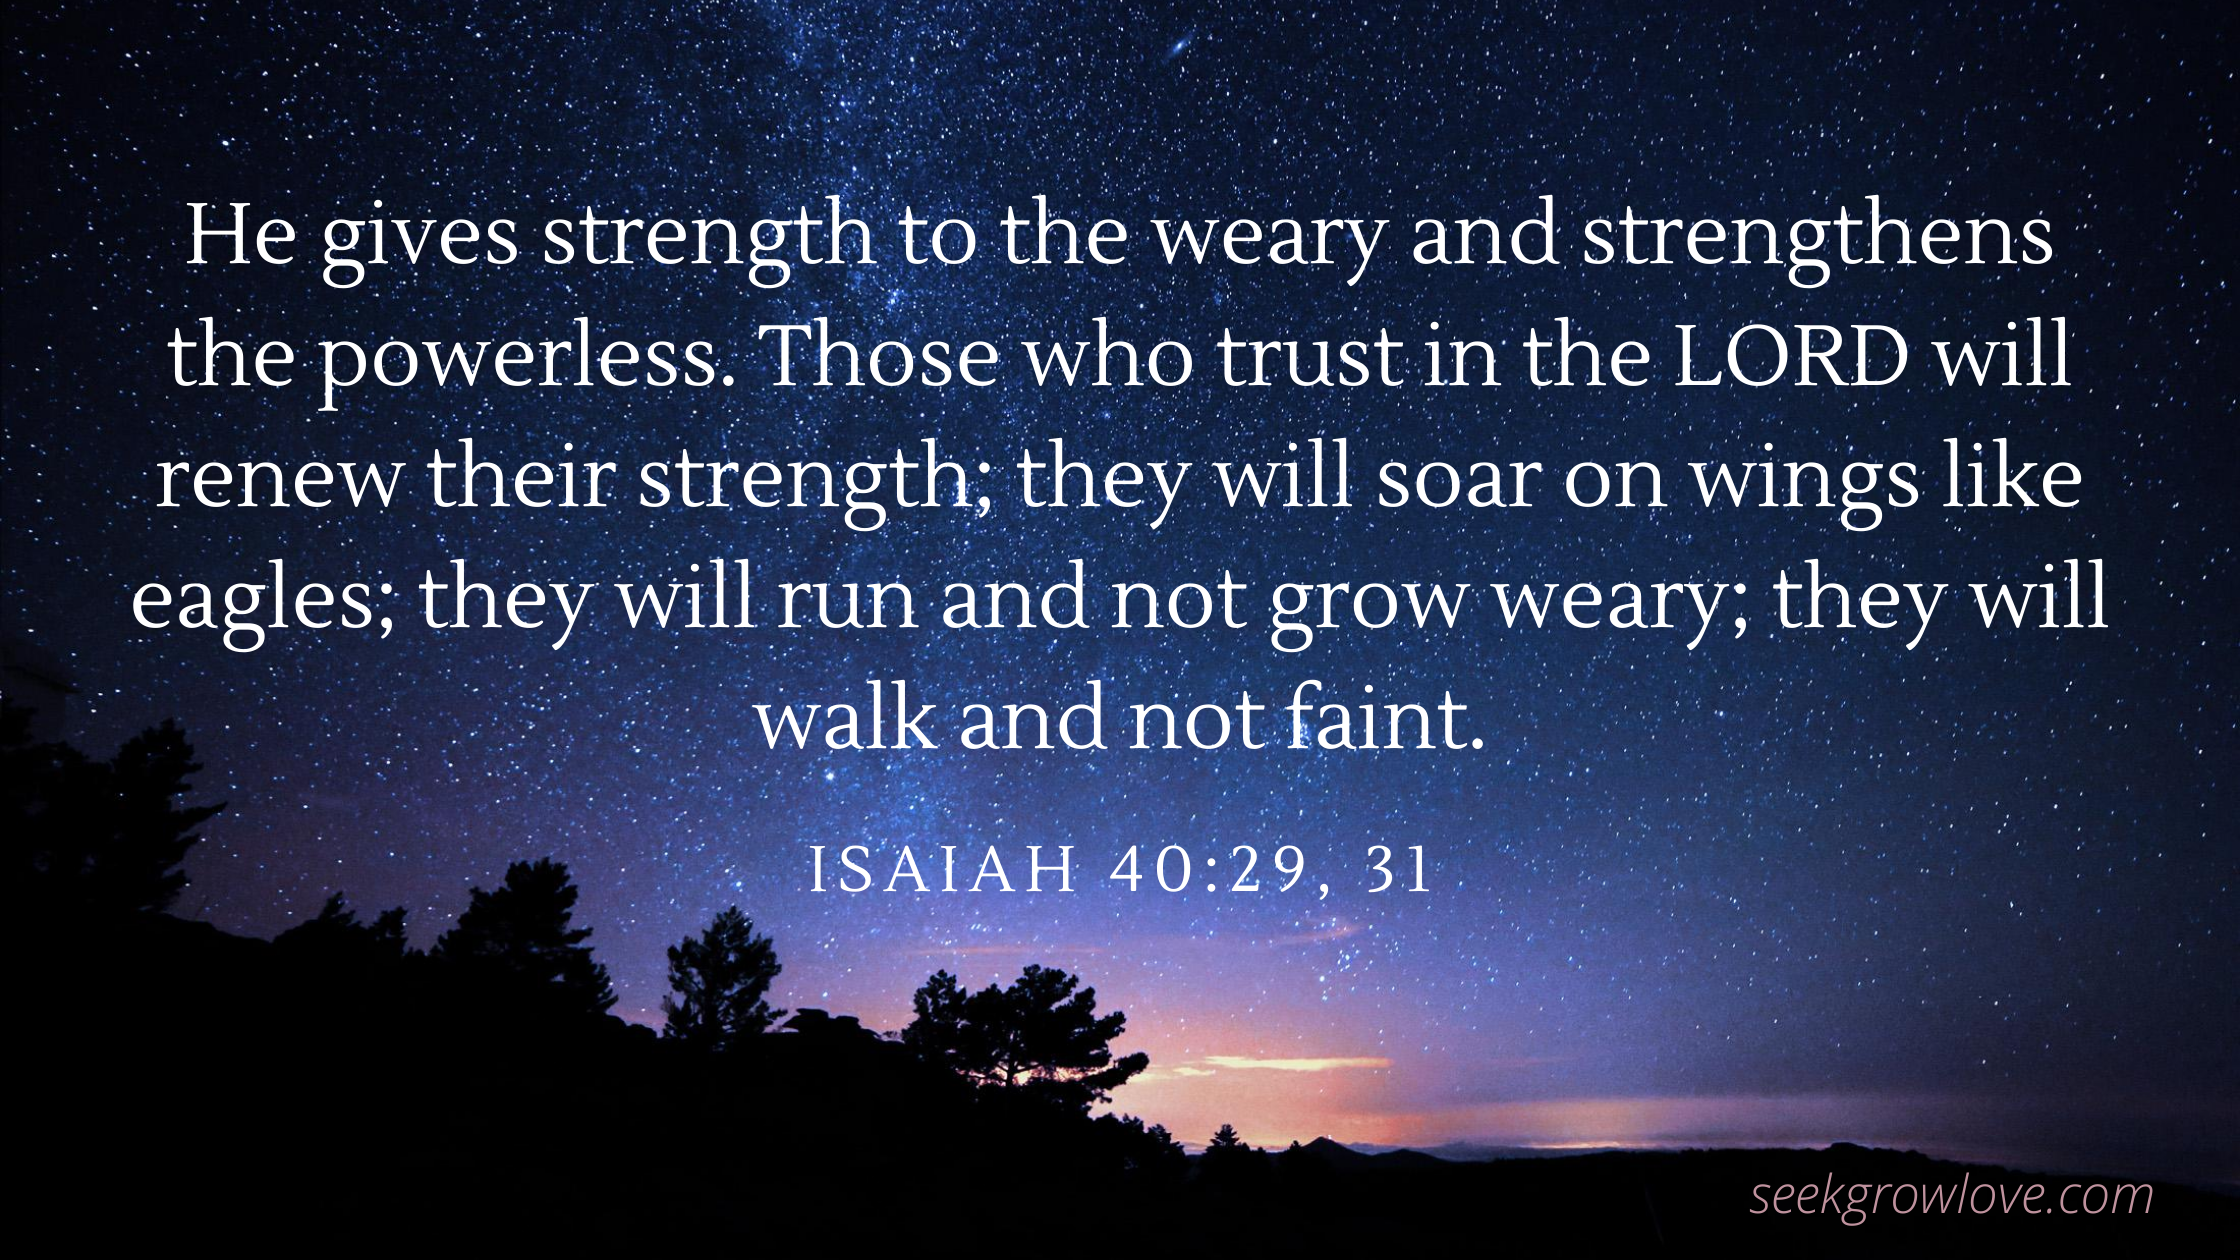 He gives strength to the weary and strengthens the powerless. Those who trust in the LORD will renew their strength; they will soar on wings like eagles; they will run and not grow weary; they will walk and not faint